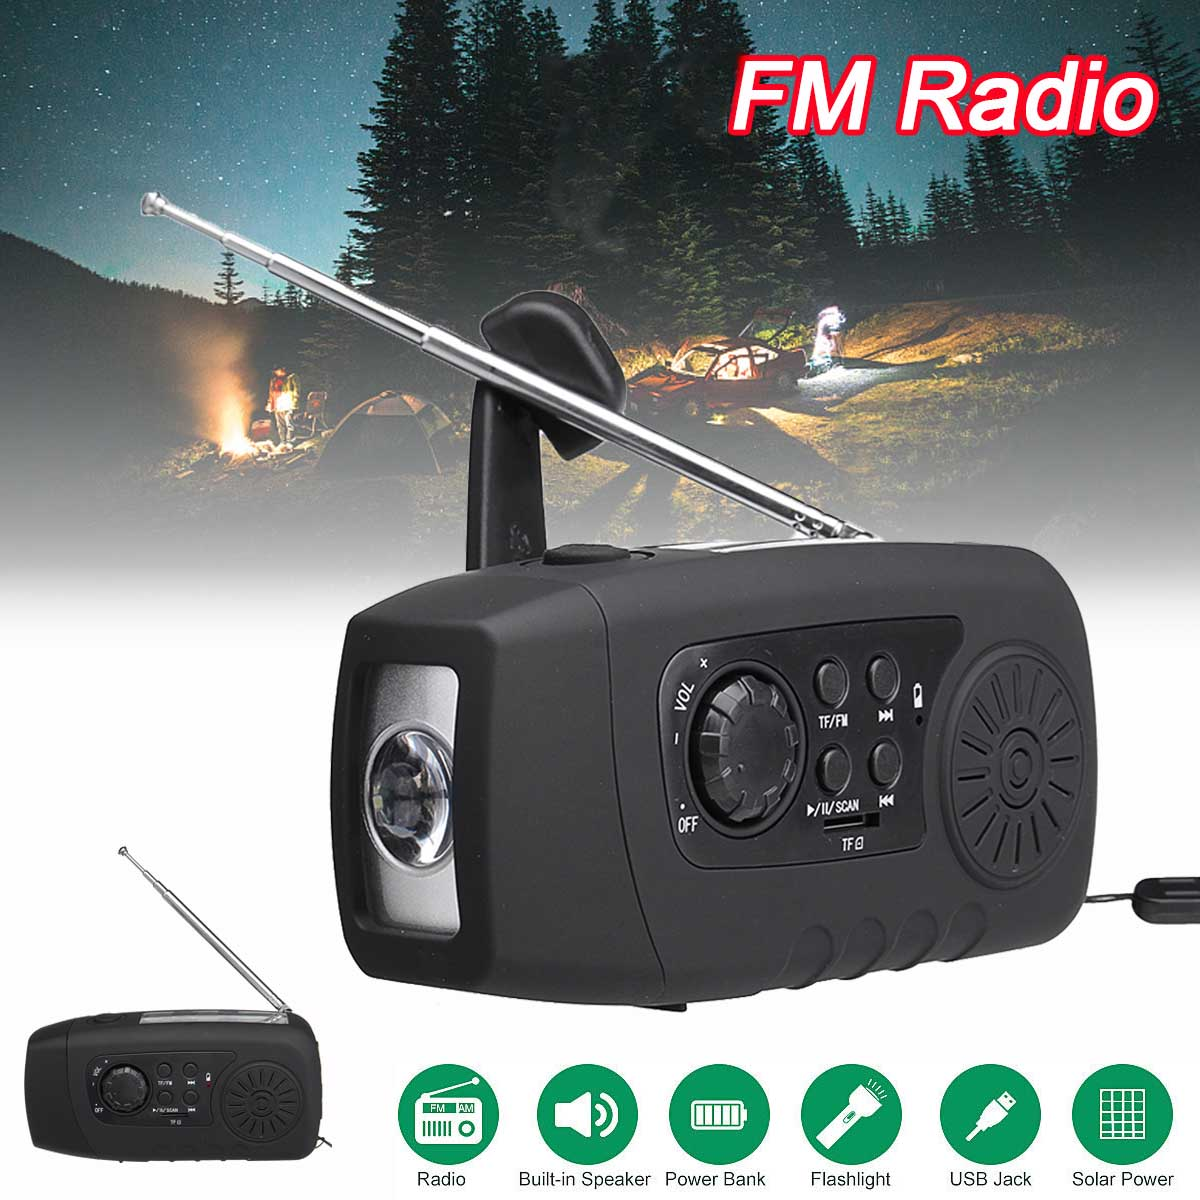 NEW Arrival 3 In 1 Solar/Crank Power FM/TF Radio LED Flashlight Emergency 2000mAh Power Bank Phone Charger Camping Tool protable am fm radio hand crank generator solar power radio with flashlight 2000mah phone charger